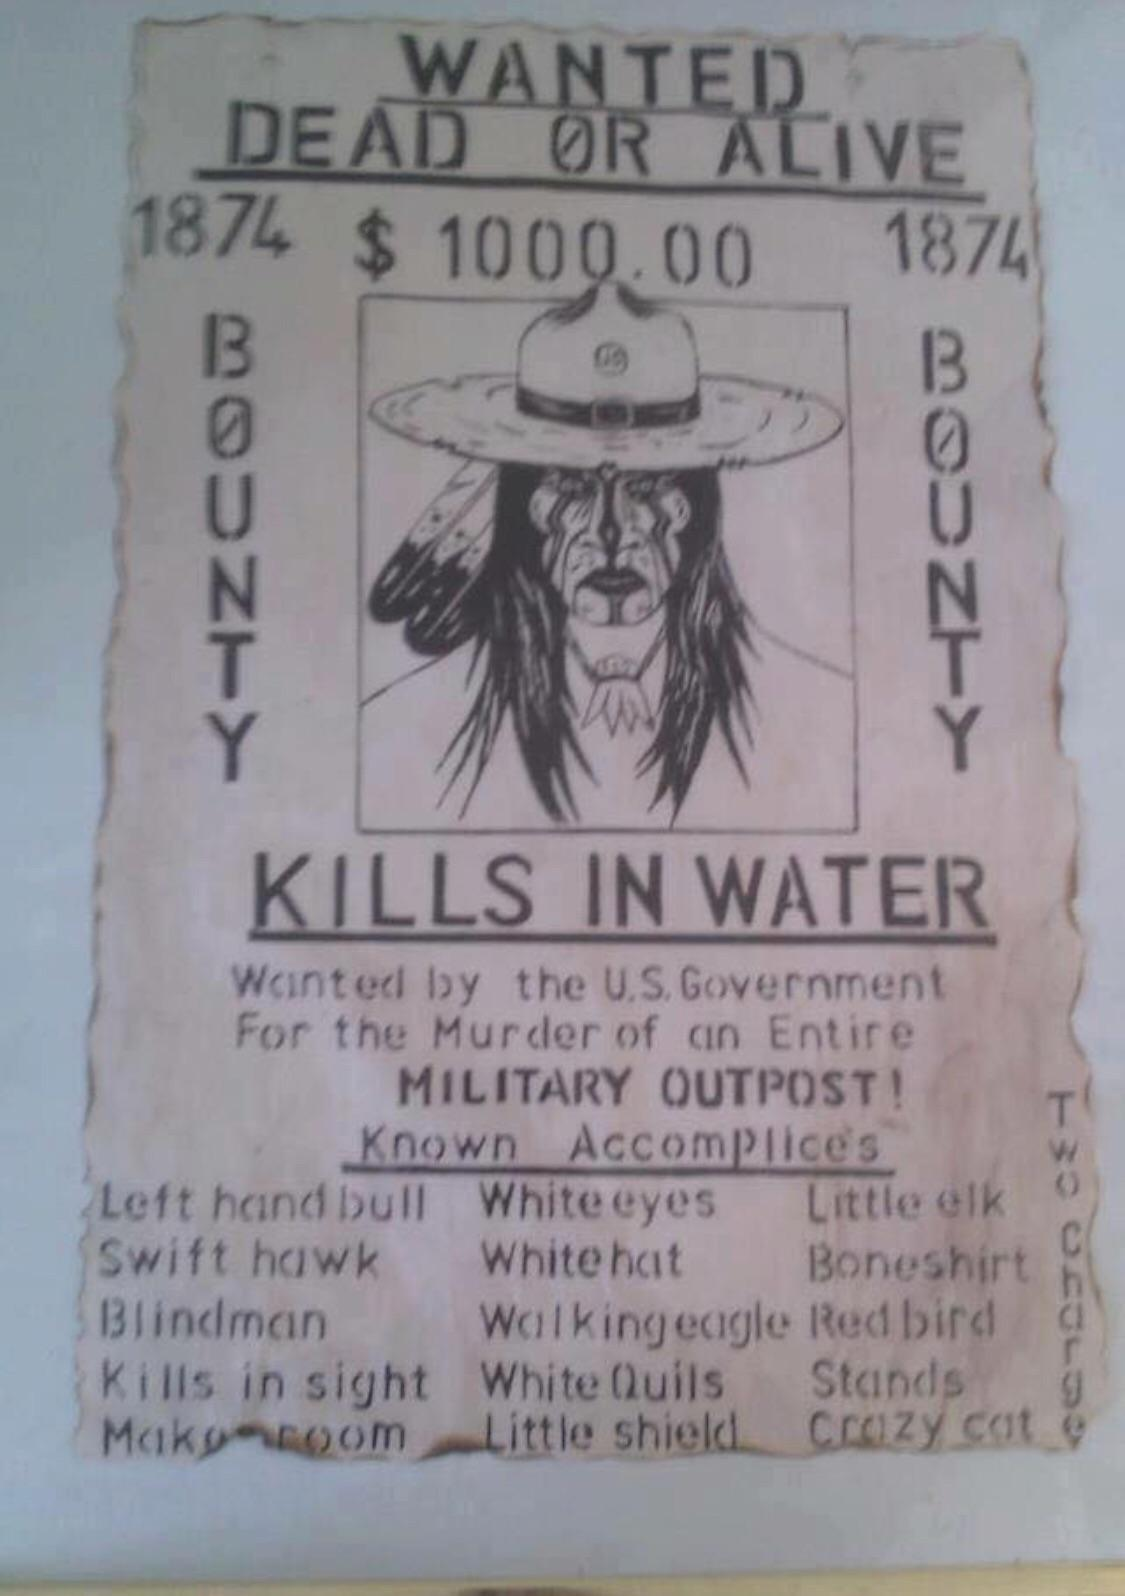 Wanted poster from 1874.jpg